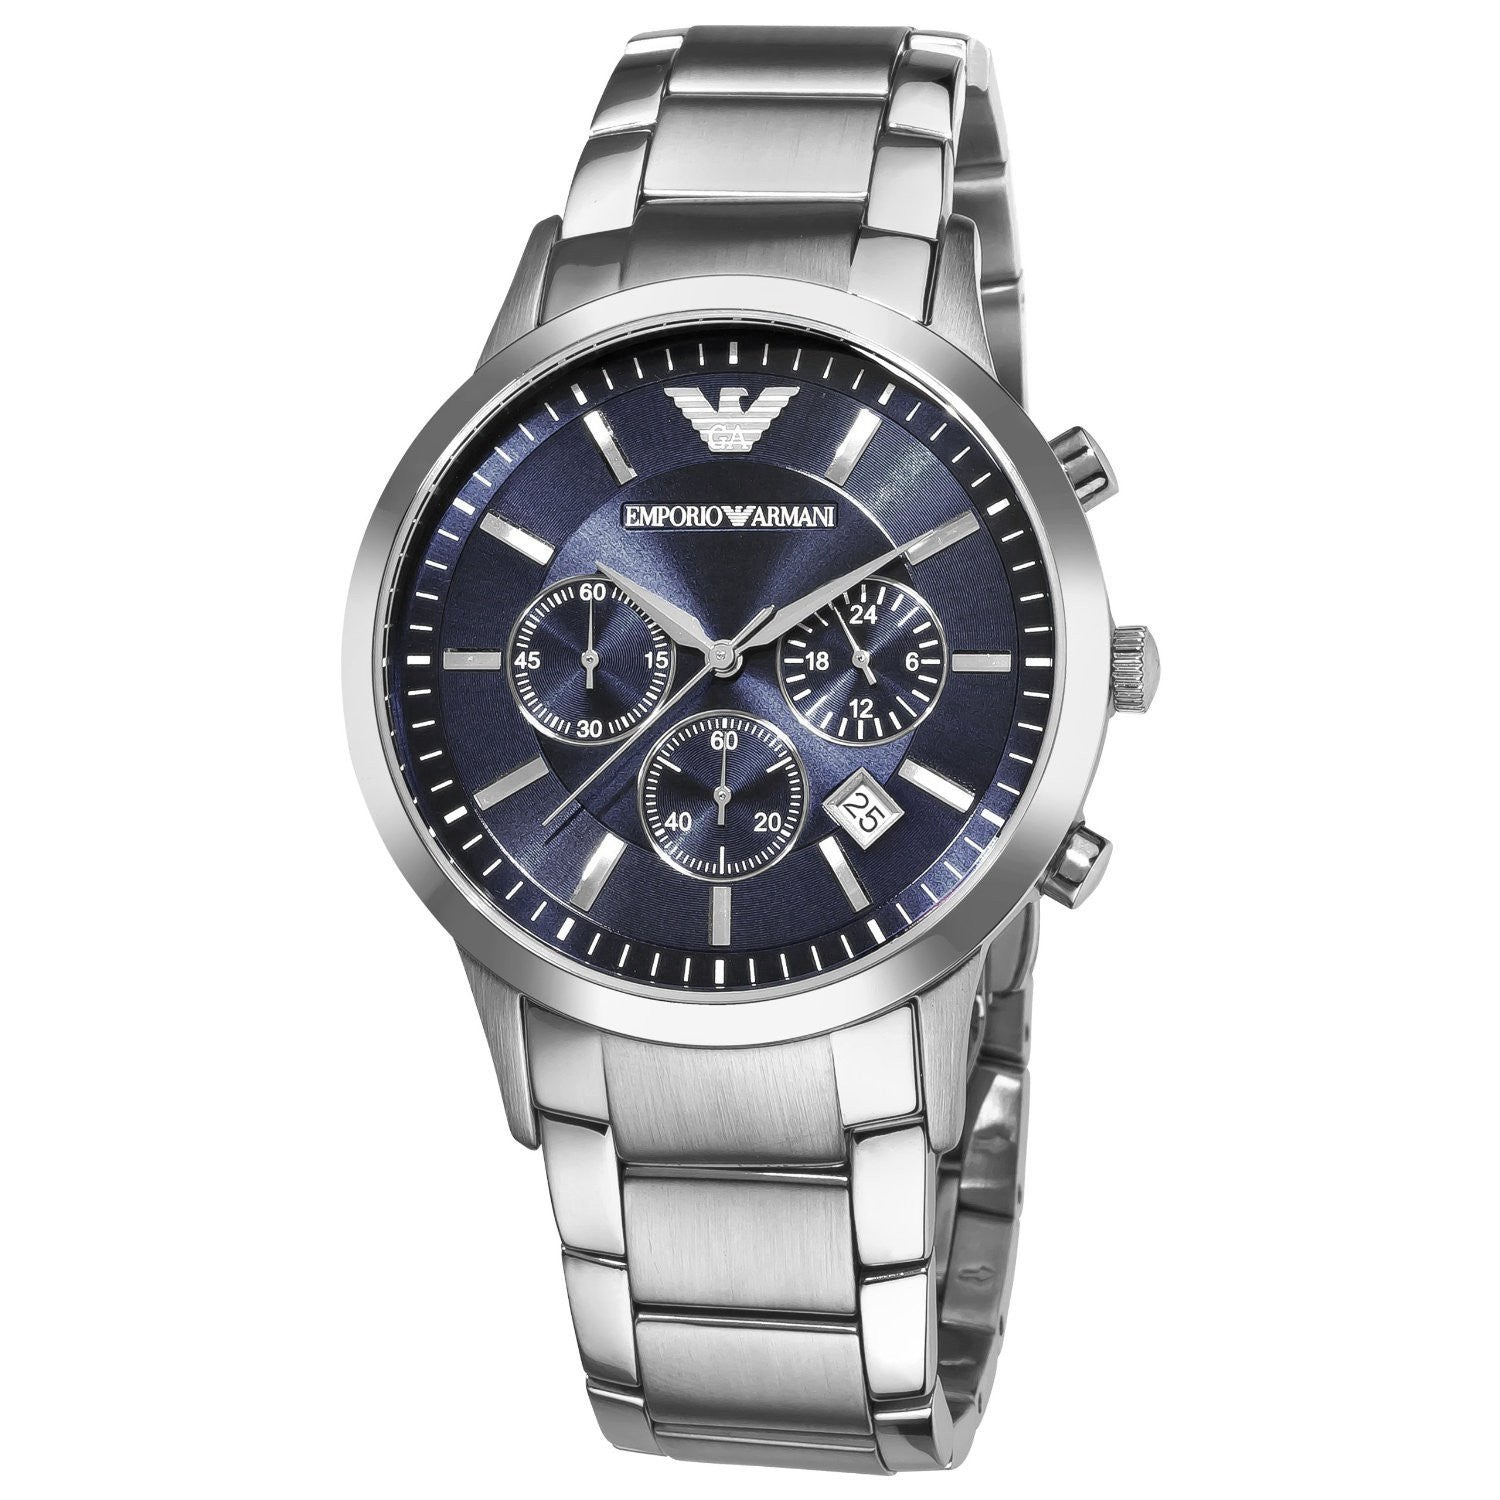 Cavallo Una notte imballare  Emporio Armani Classic Watch Navy Blue/Silver Quartz Analog Men's ...